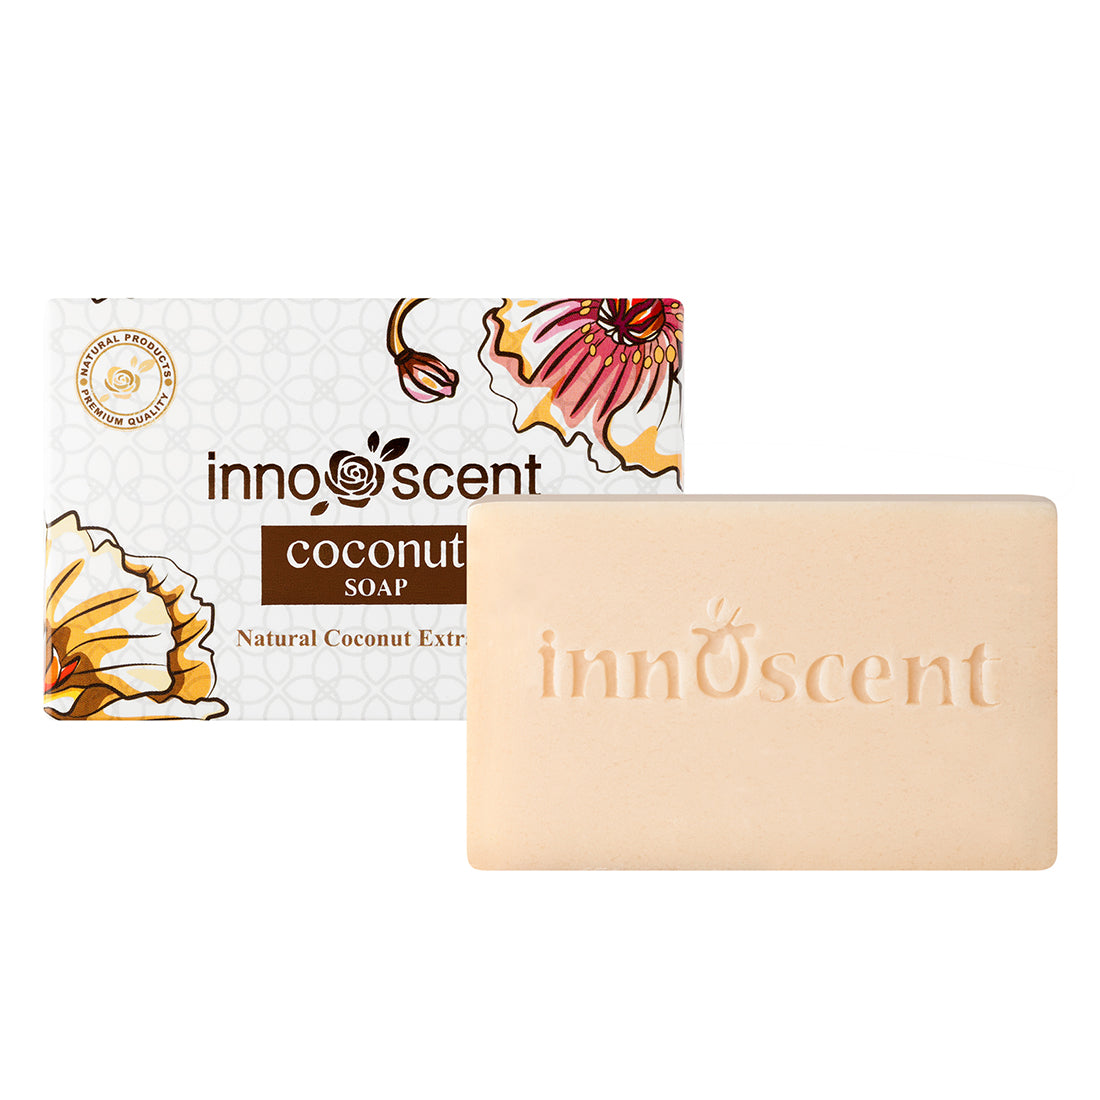 Innoscent Natural Coconut Soap